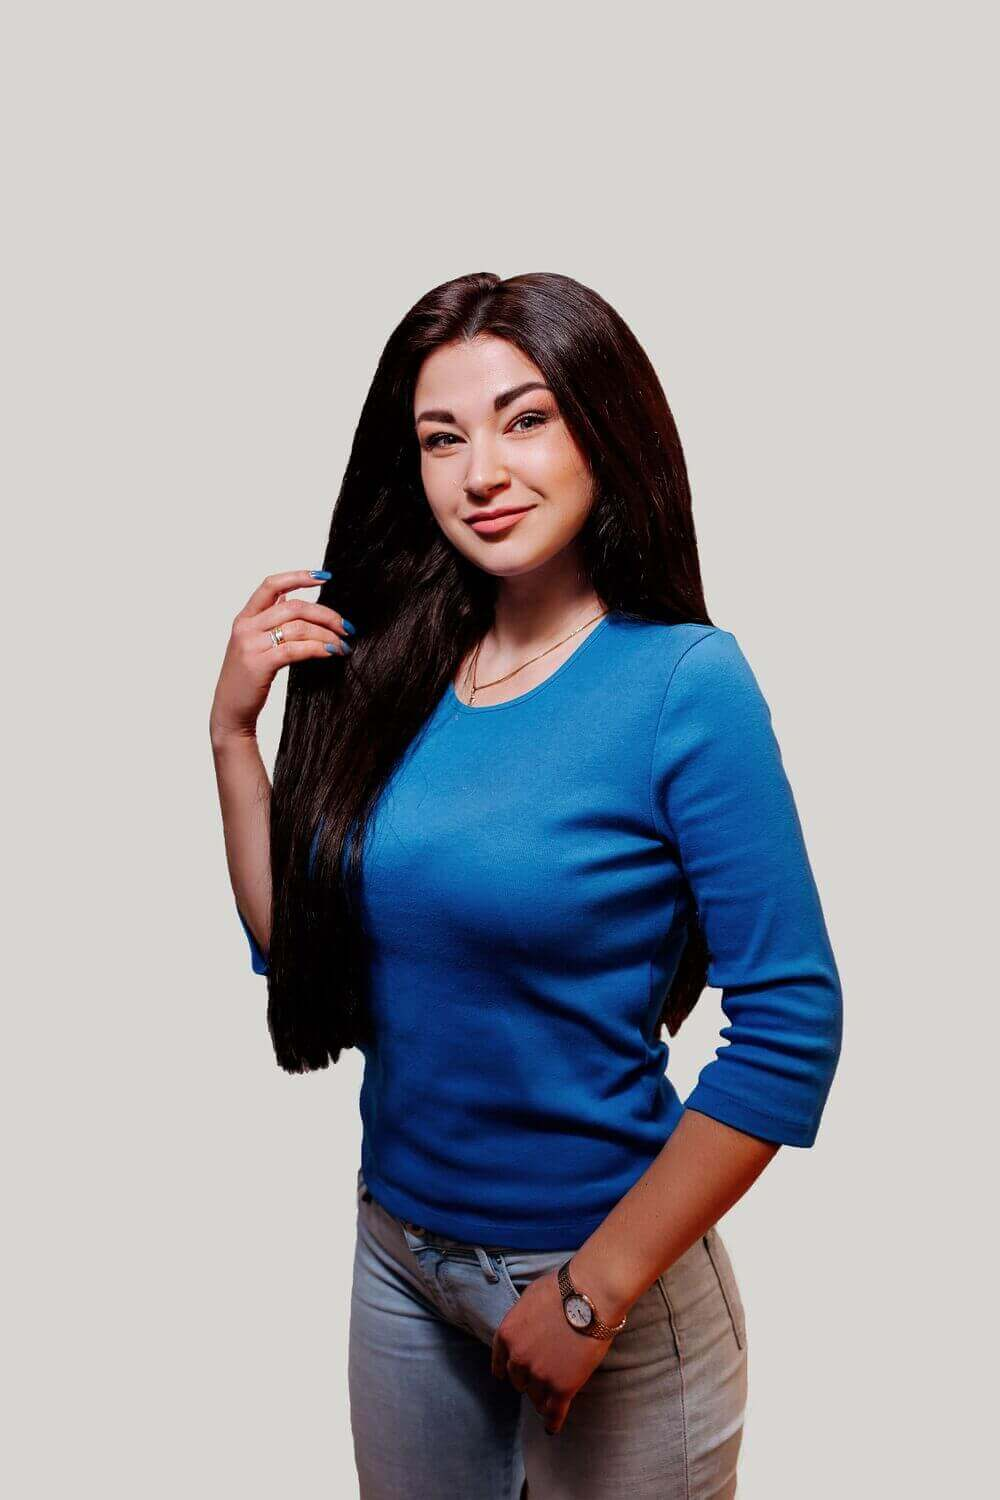 Iryna Project Manager